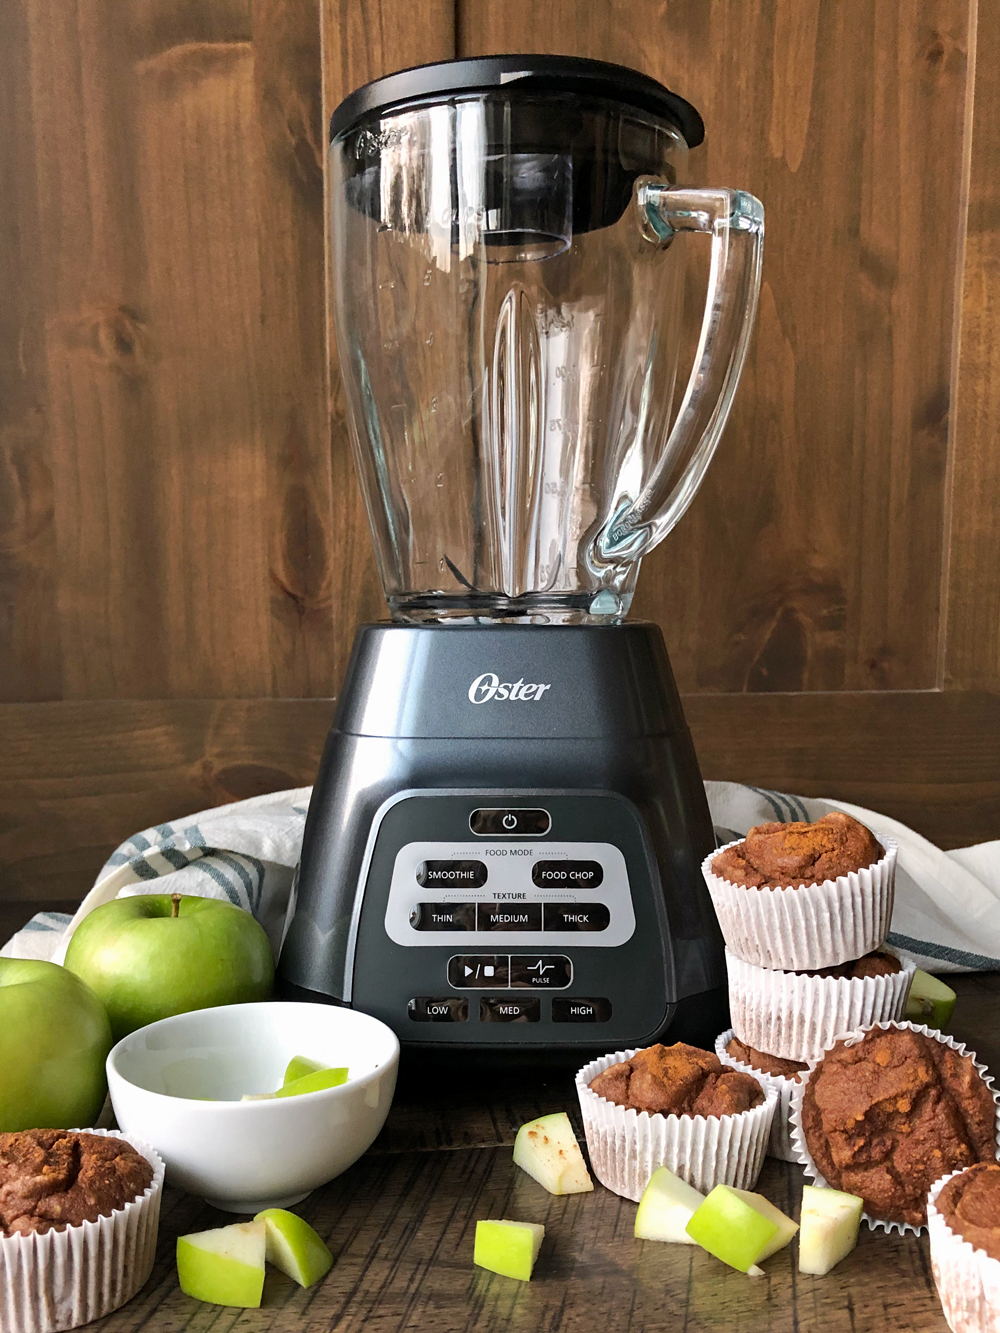 How-to-Use-the-Oster-Blender-to-Make-Muffins